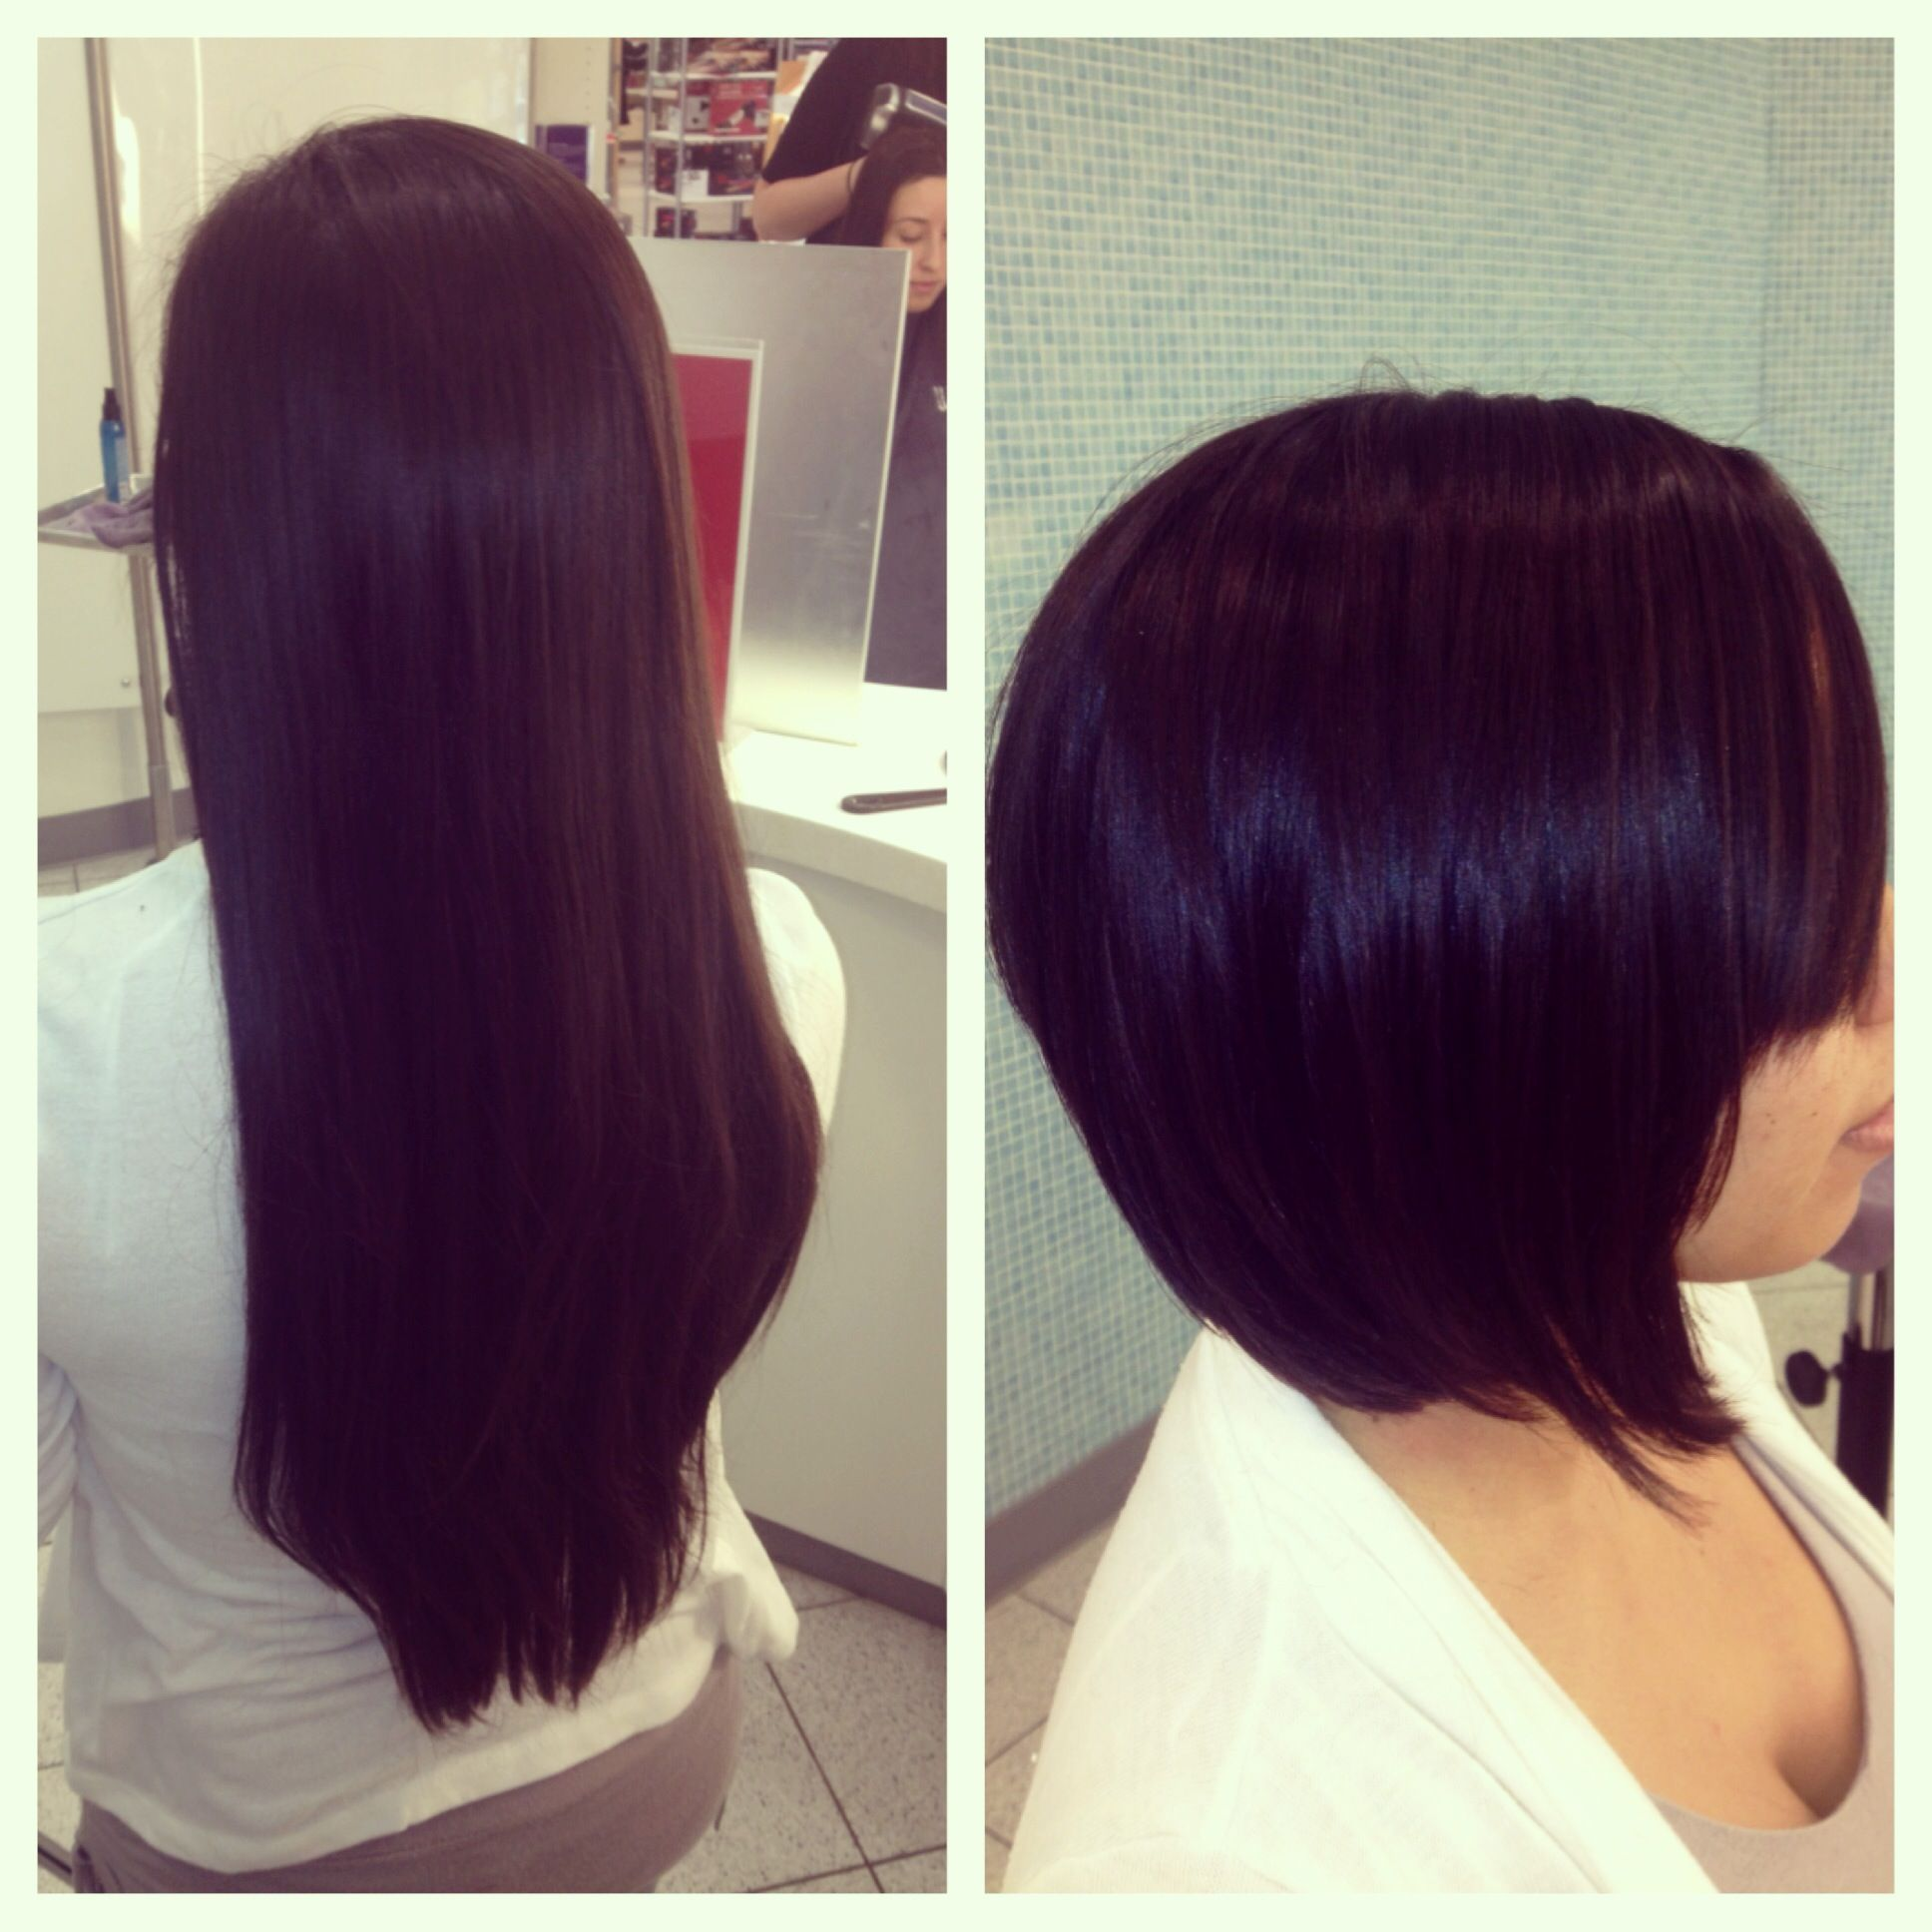 Graduated Bob Before And After Donated To Locks Of Love 3 Long Hair Styles Graduated Bob Hairstyles Hair Transformation